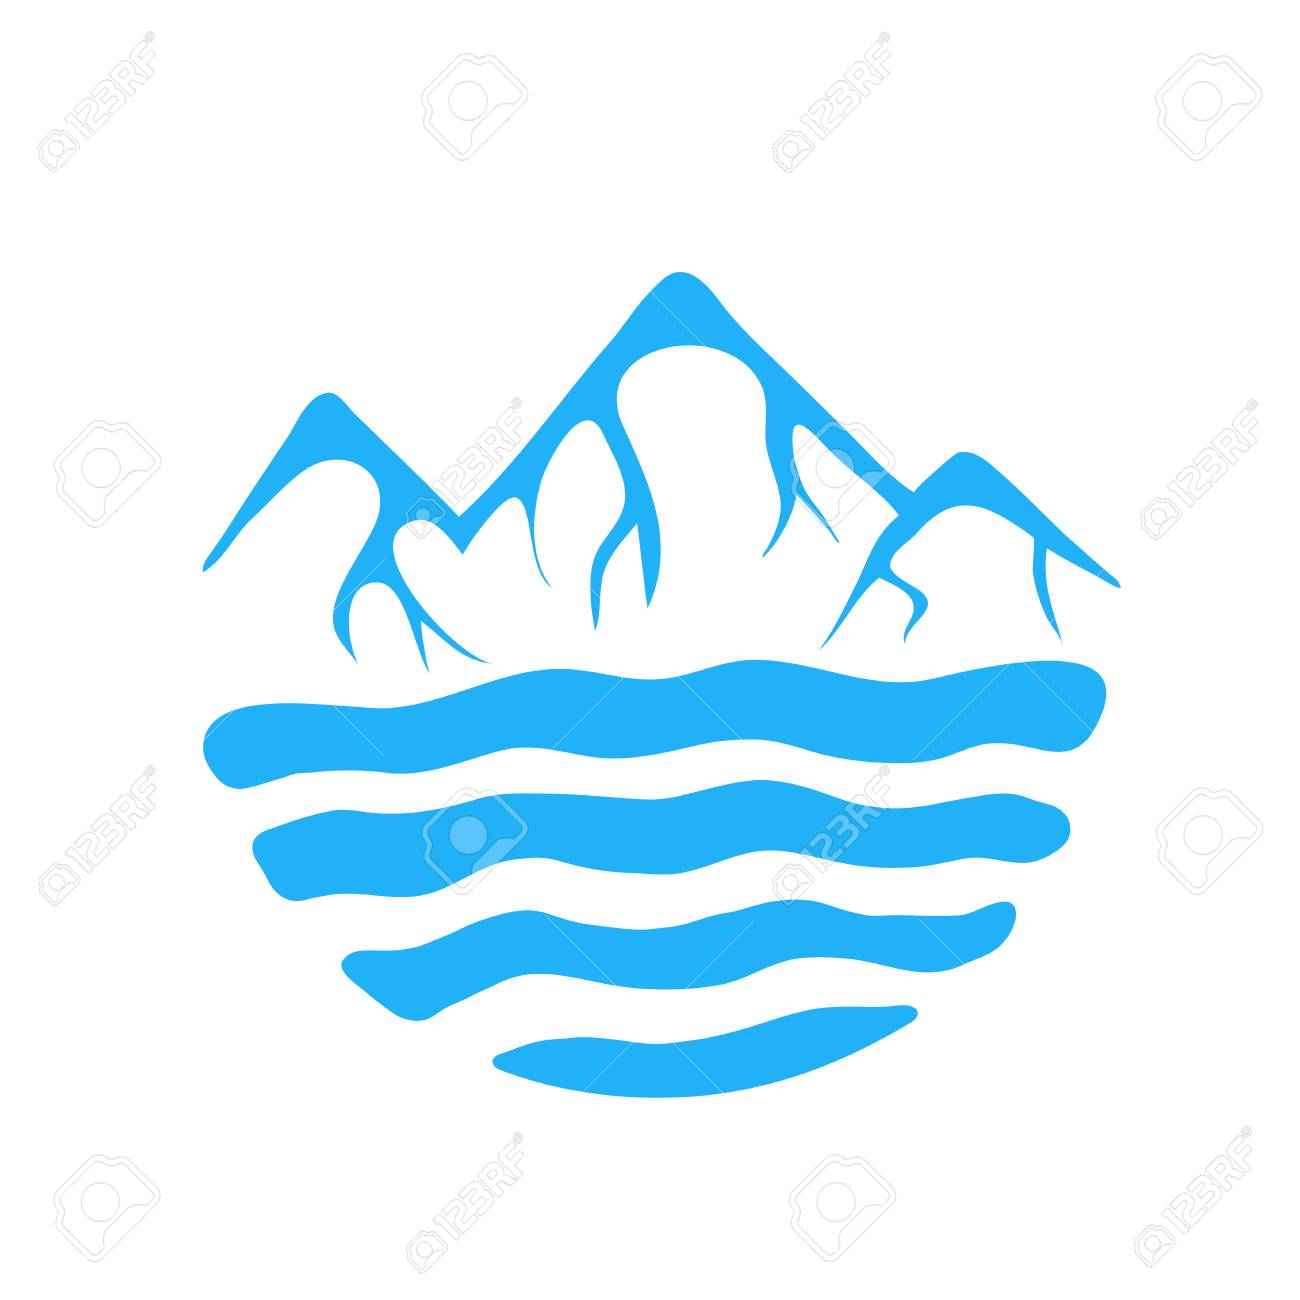 mountain and sea or river vector icon illustration royalty free cliparts vectors and stock illustration image 43133974 mountain and sea or river vector icon illustration